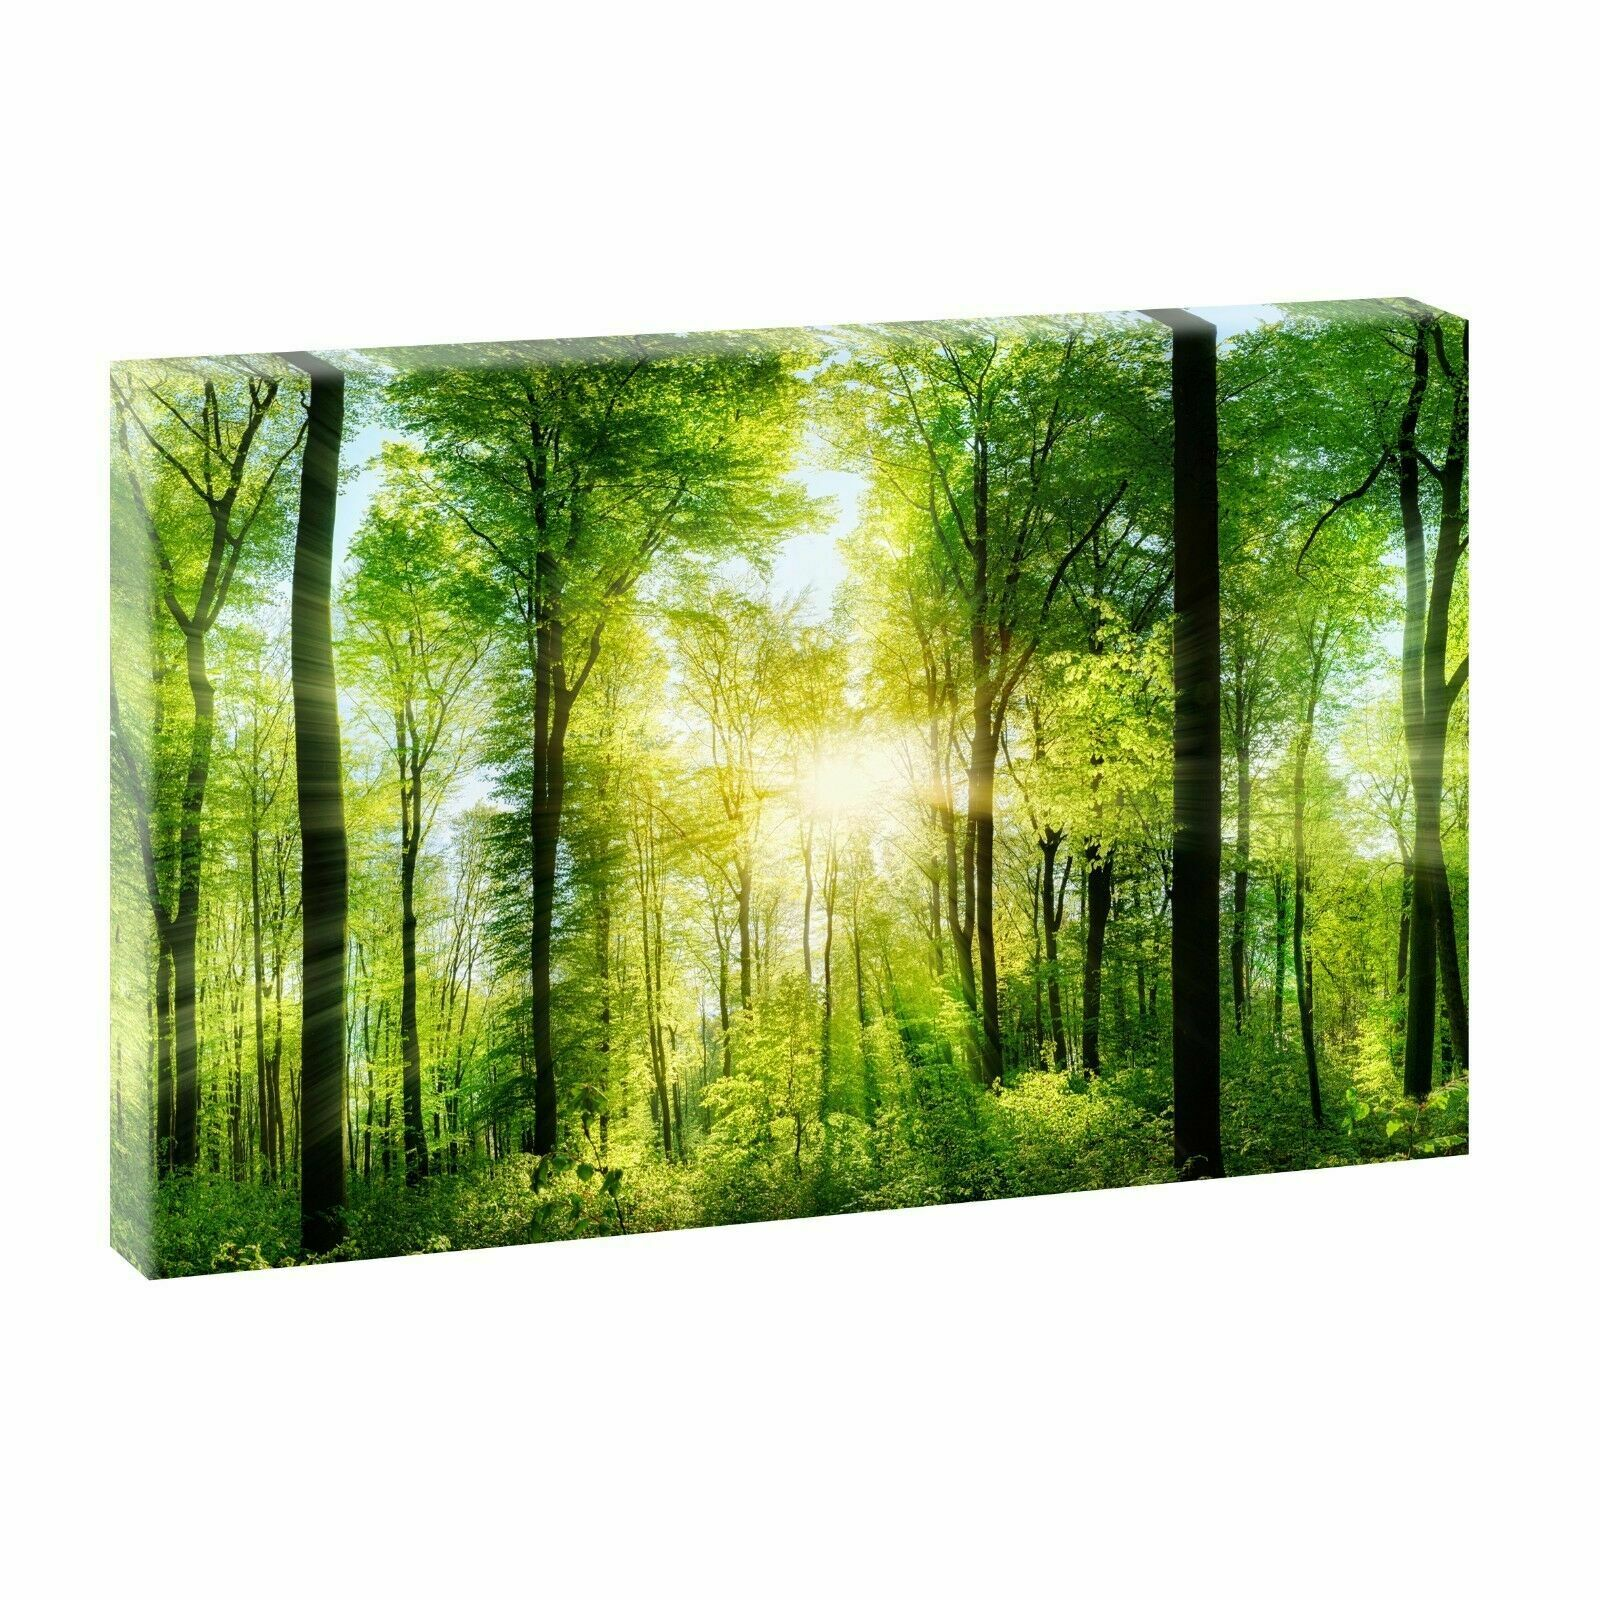 wald bild auf leinwand poster wandbilder deko natur xxl 120 cm 80 cm 729 eur 34 50 picclick de. Black Bedroom Furniture Sets. Home Design Ideas